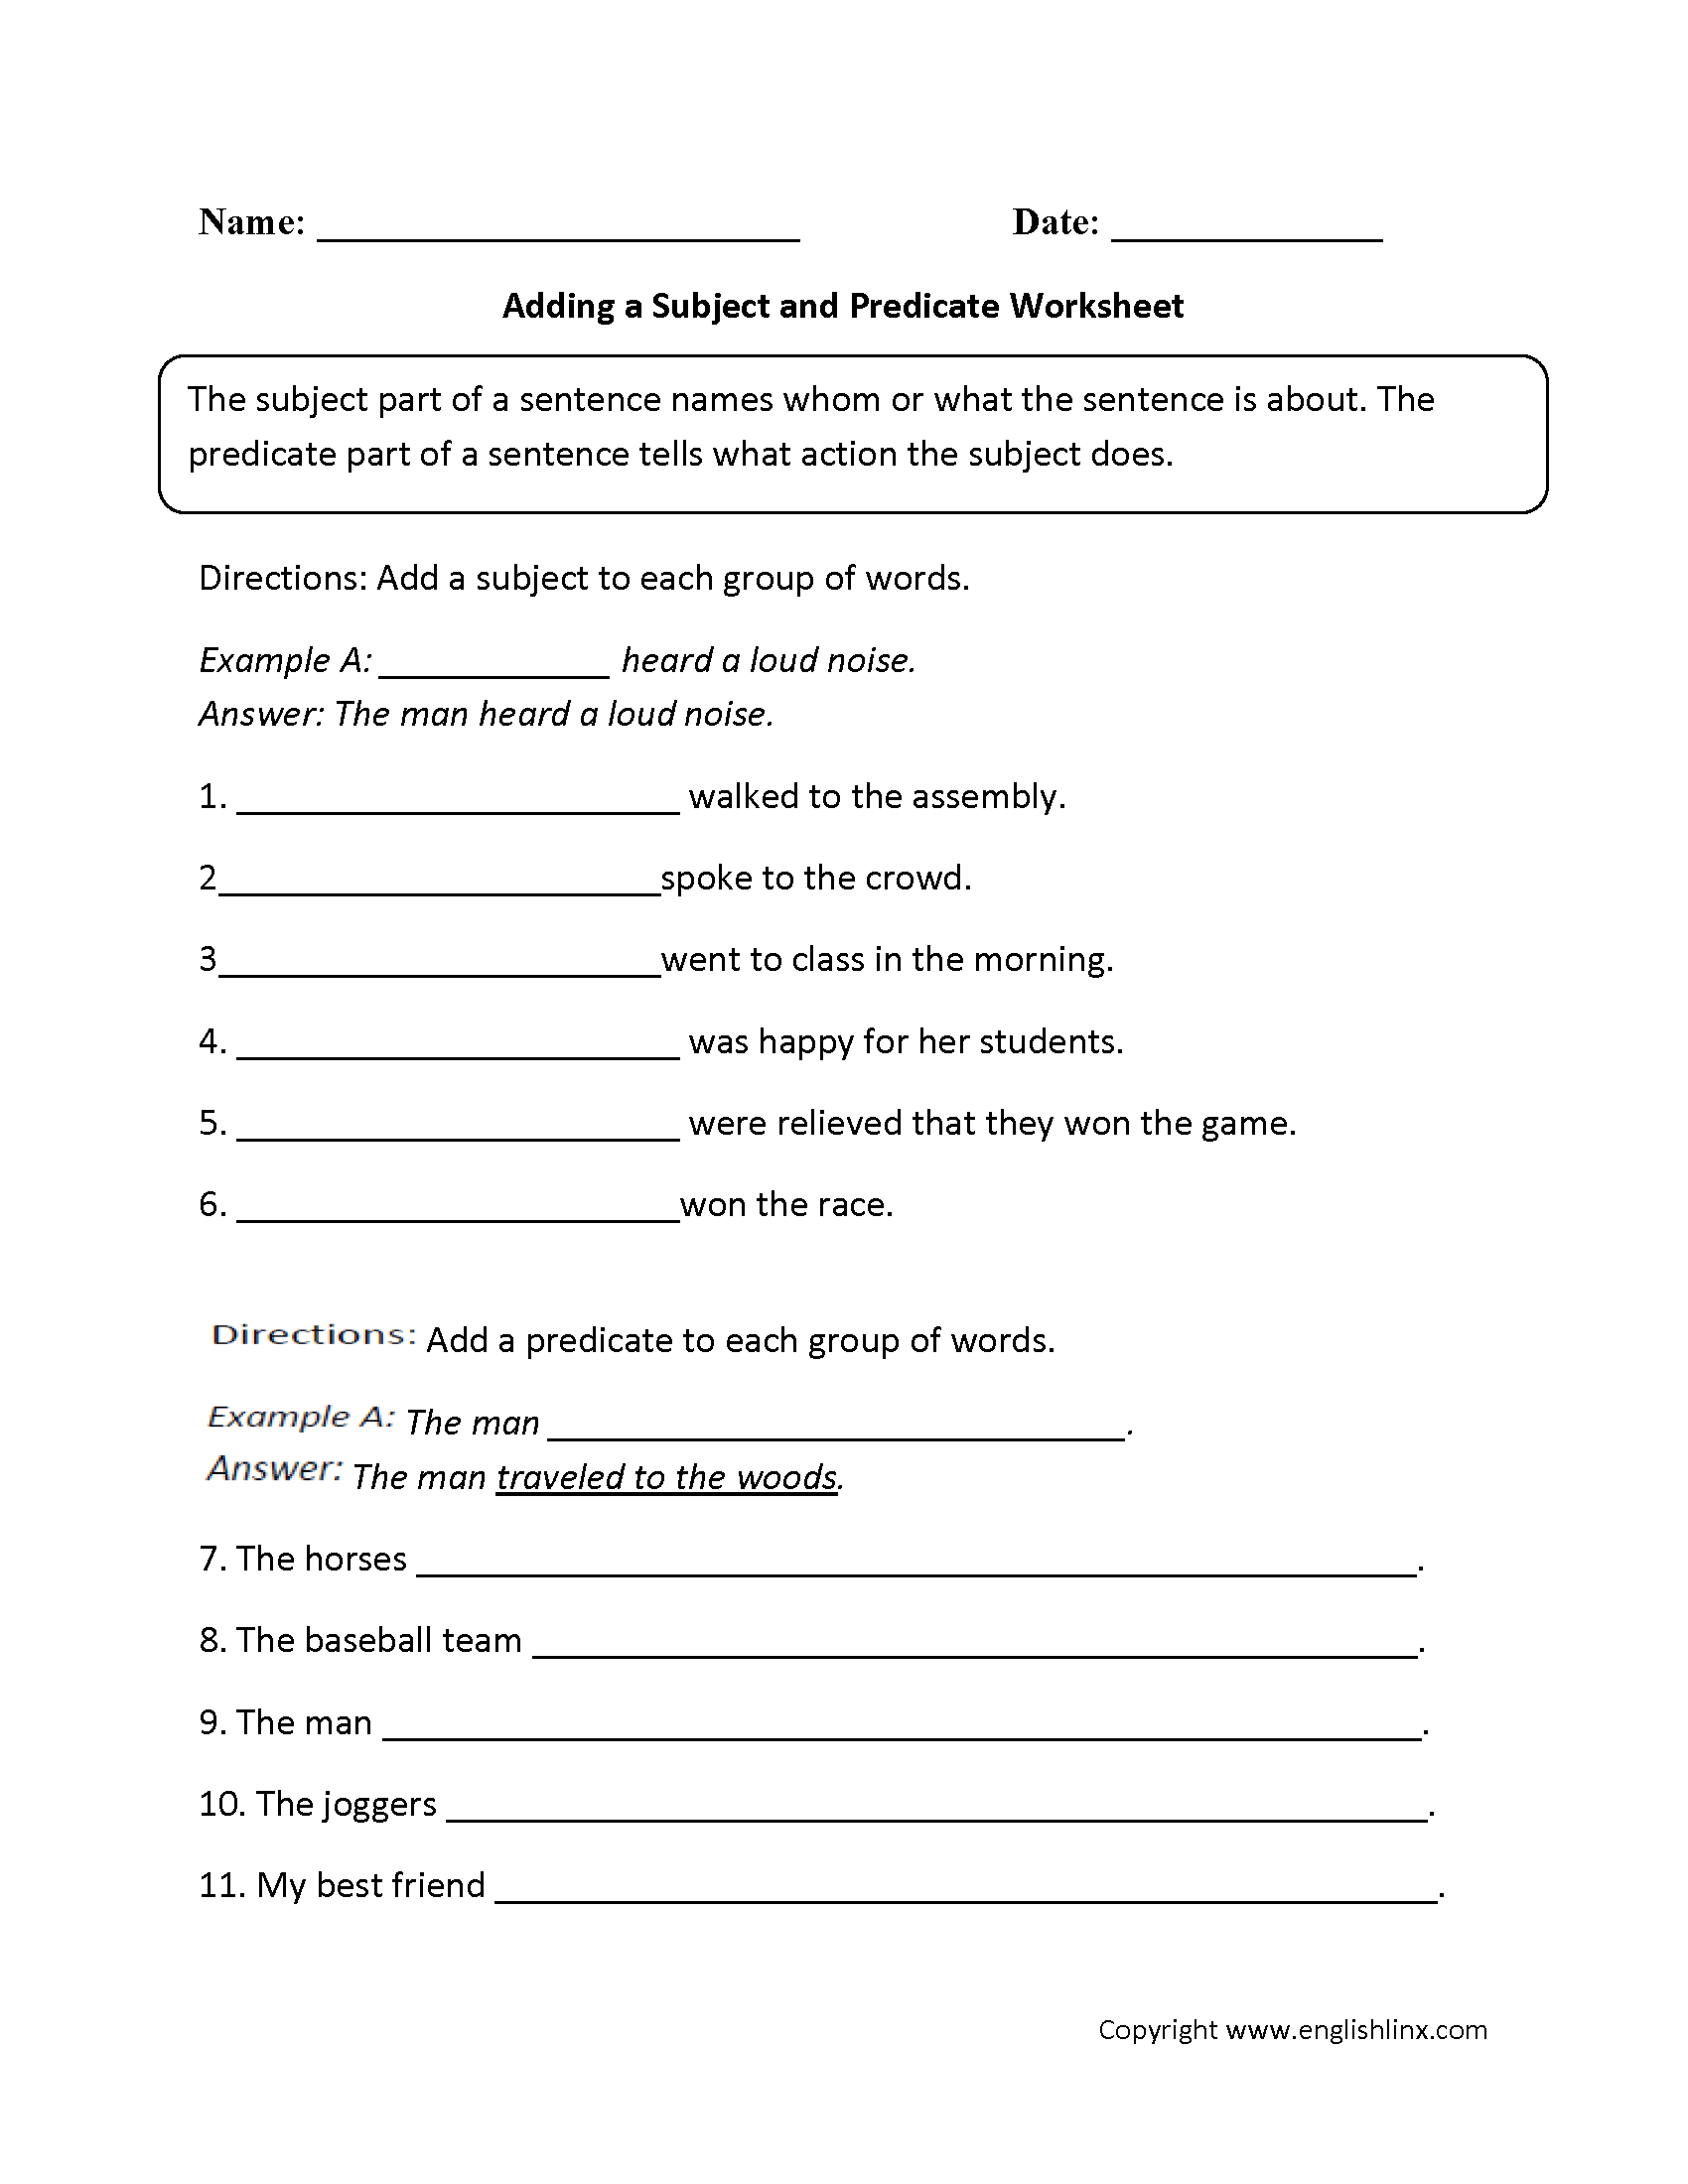 Worksheets 4th Grade Vocabulary Worksheets Free englishlinx com subject and predicate worksheets worksheet